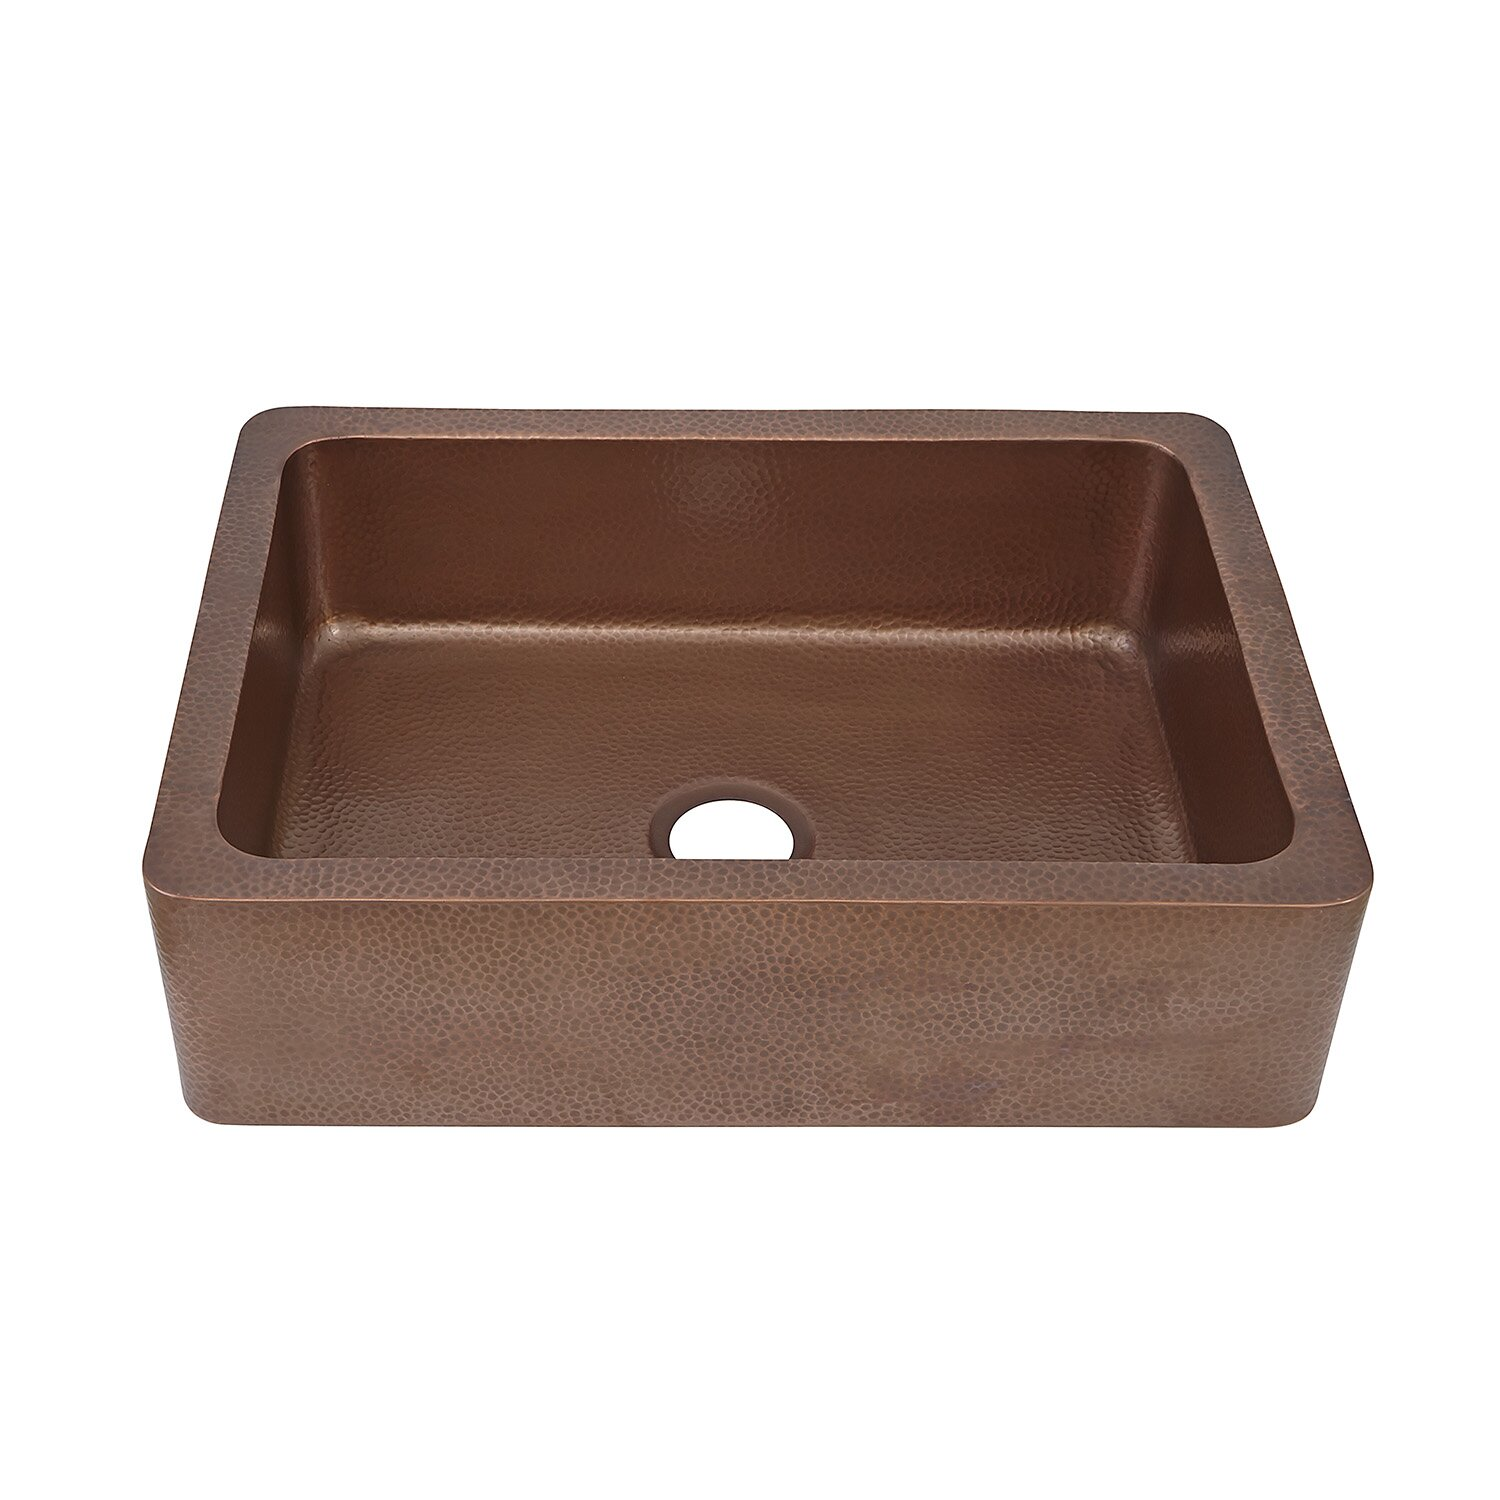 "Sinkology 33"" x 22"" Single Bowl Kitchen Sink & Reviews"